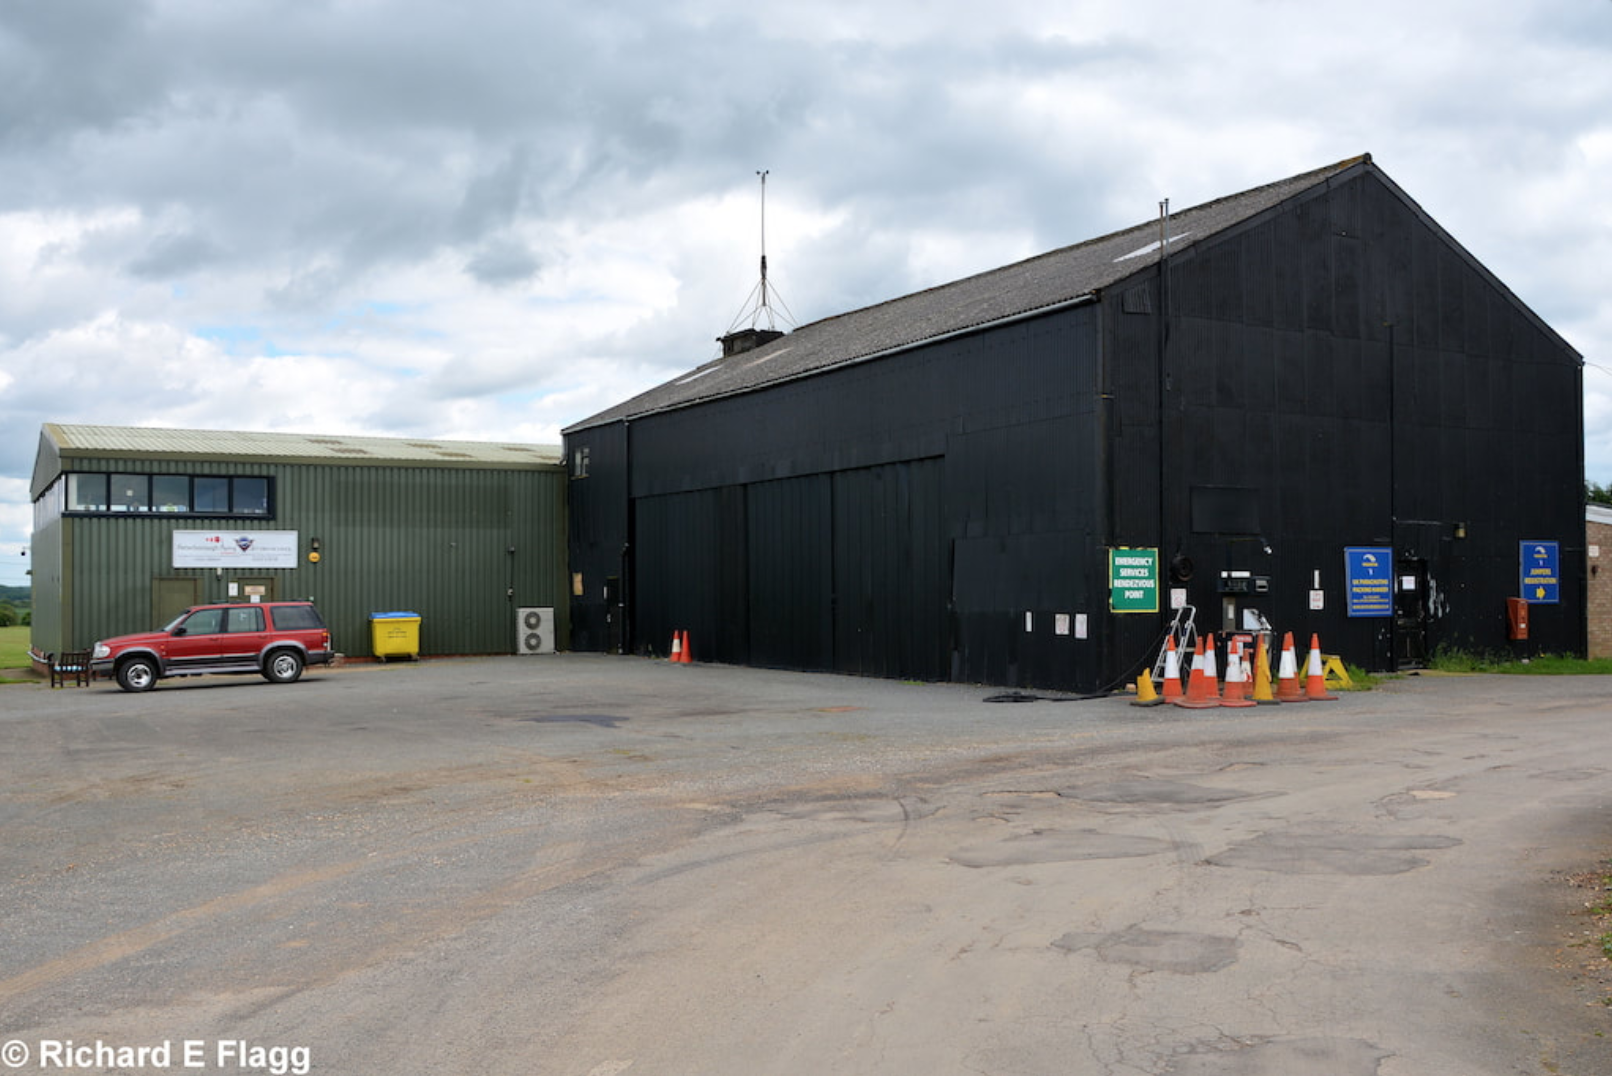 004Airfield Hangar, Offices & Control Room - 23 May 2017.png